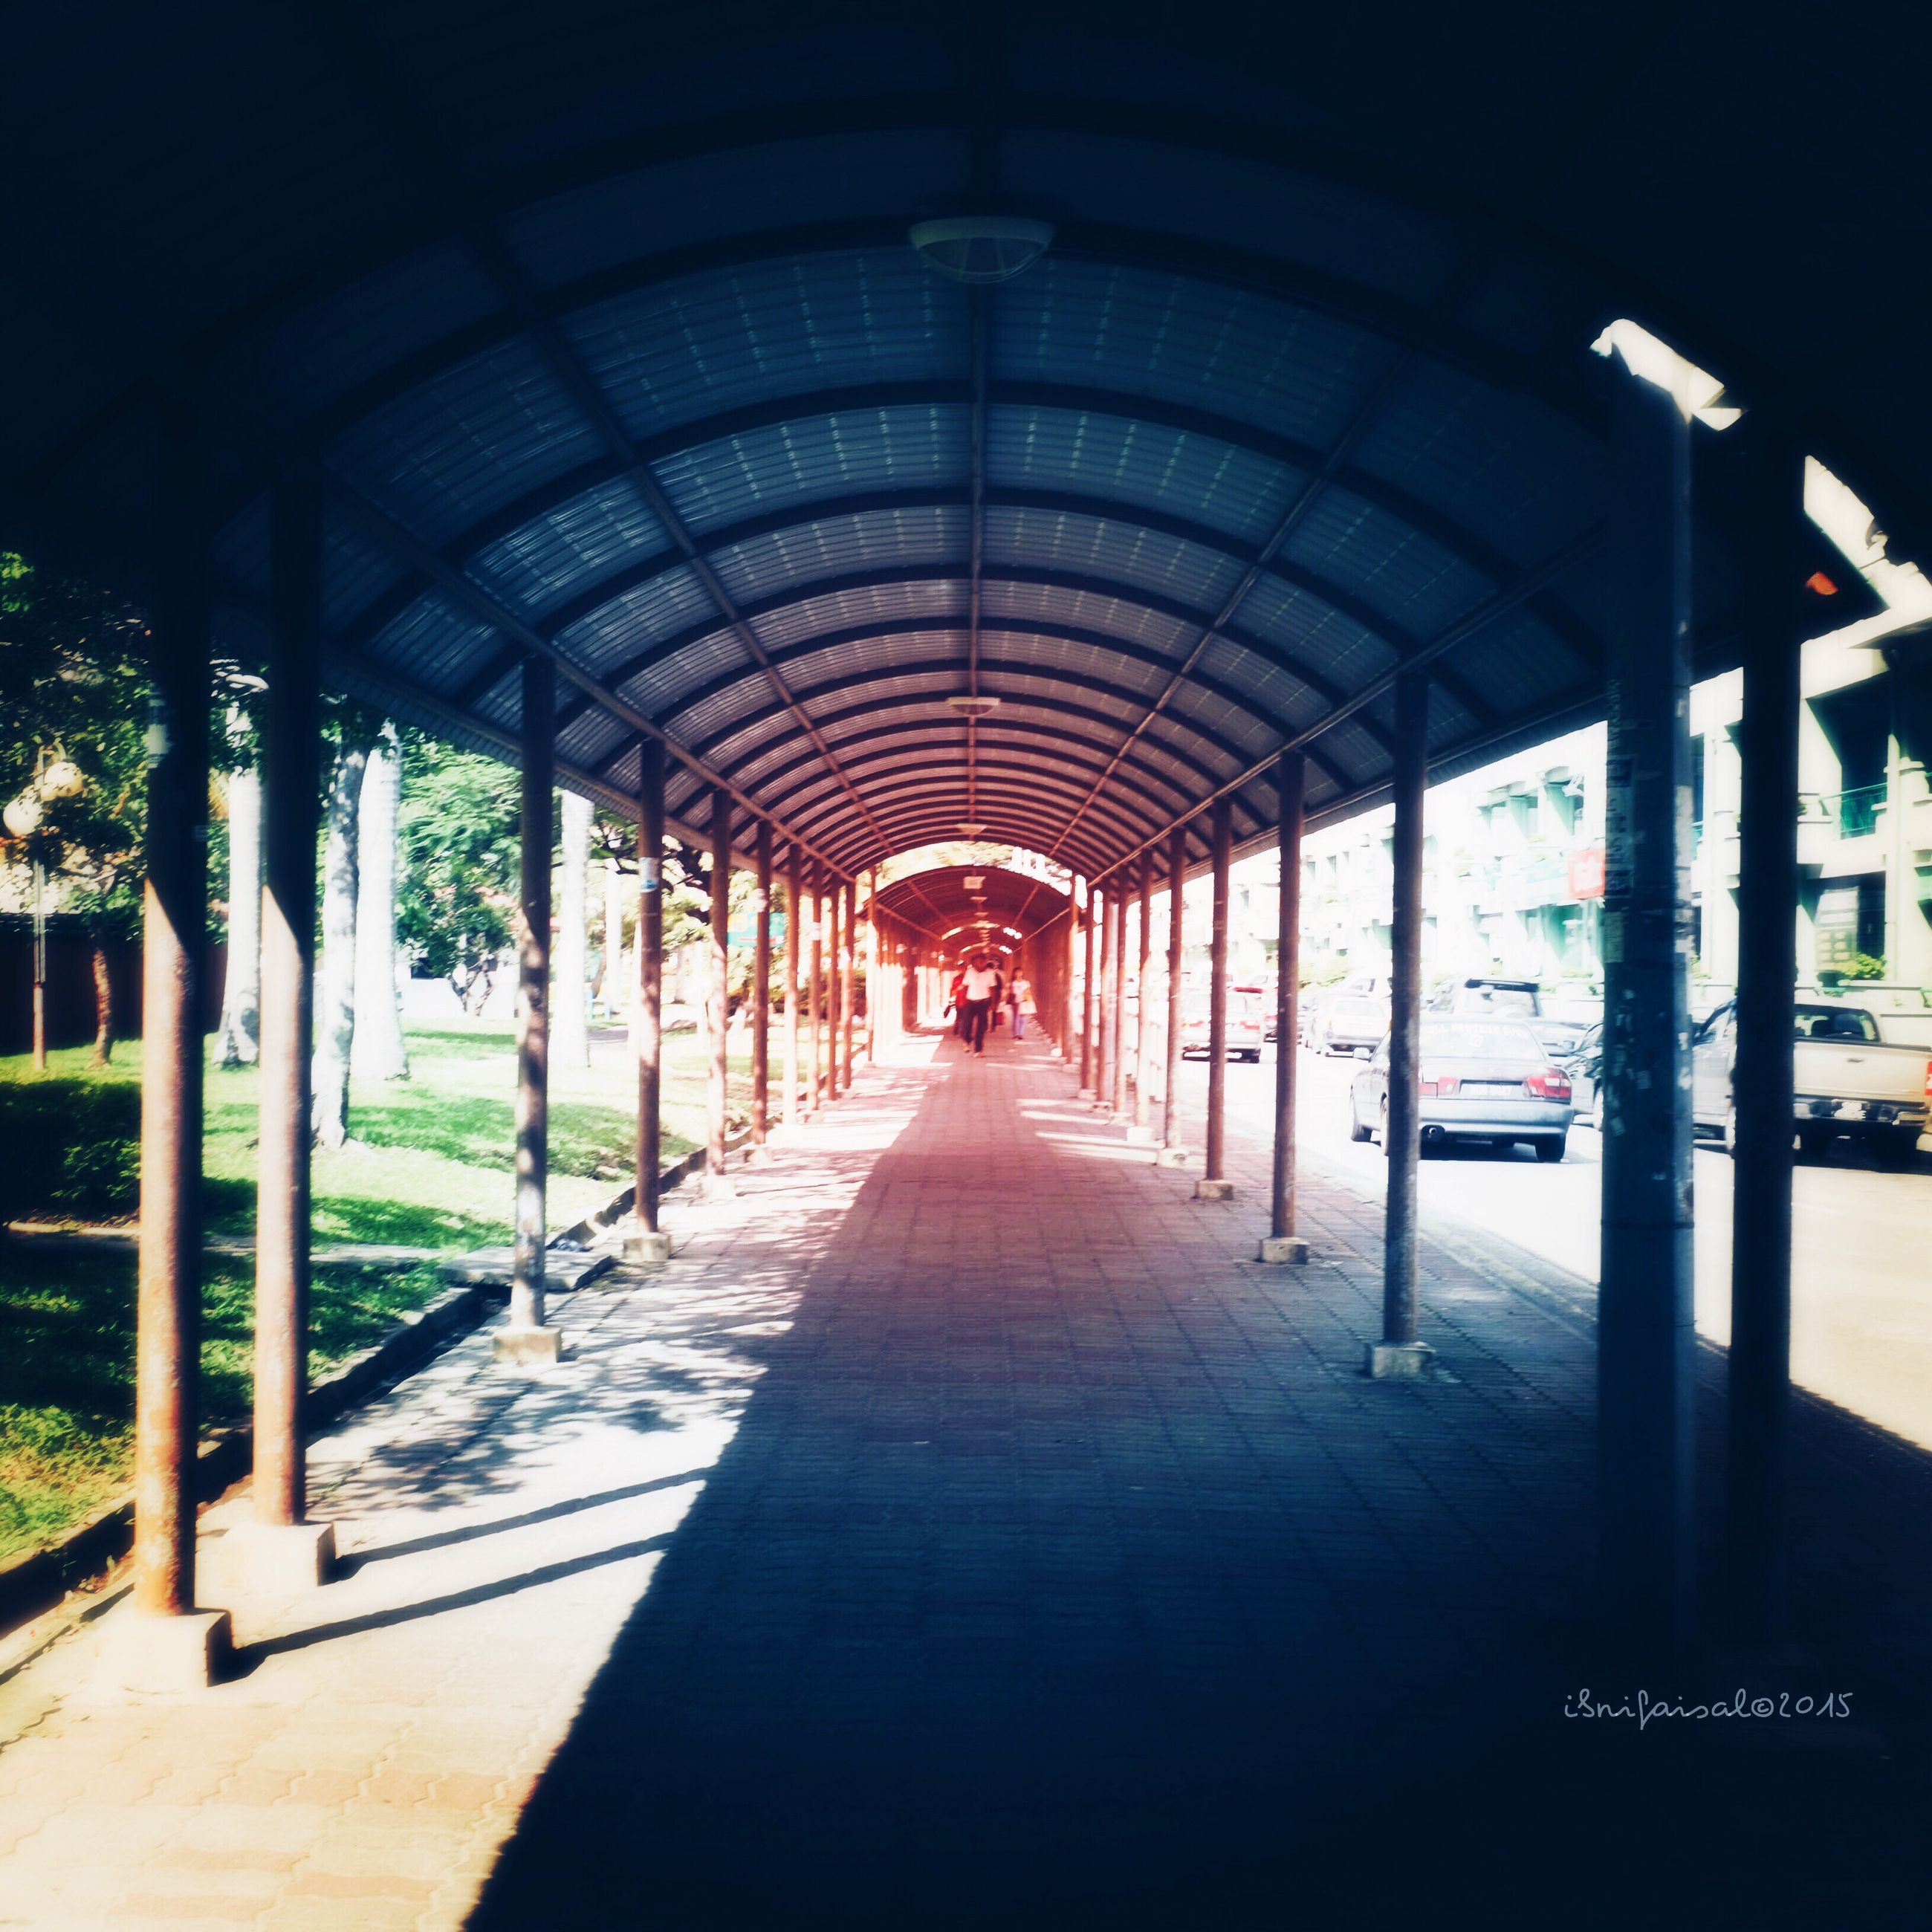 the way forward, diminishing perspective, built structure, architecture, transportation, vanishing point, architectural column, empty, in a row, indoors, column, incidental people, long, walkway, road, city, corridor, absence, colonnade, ceiling